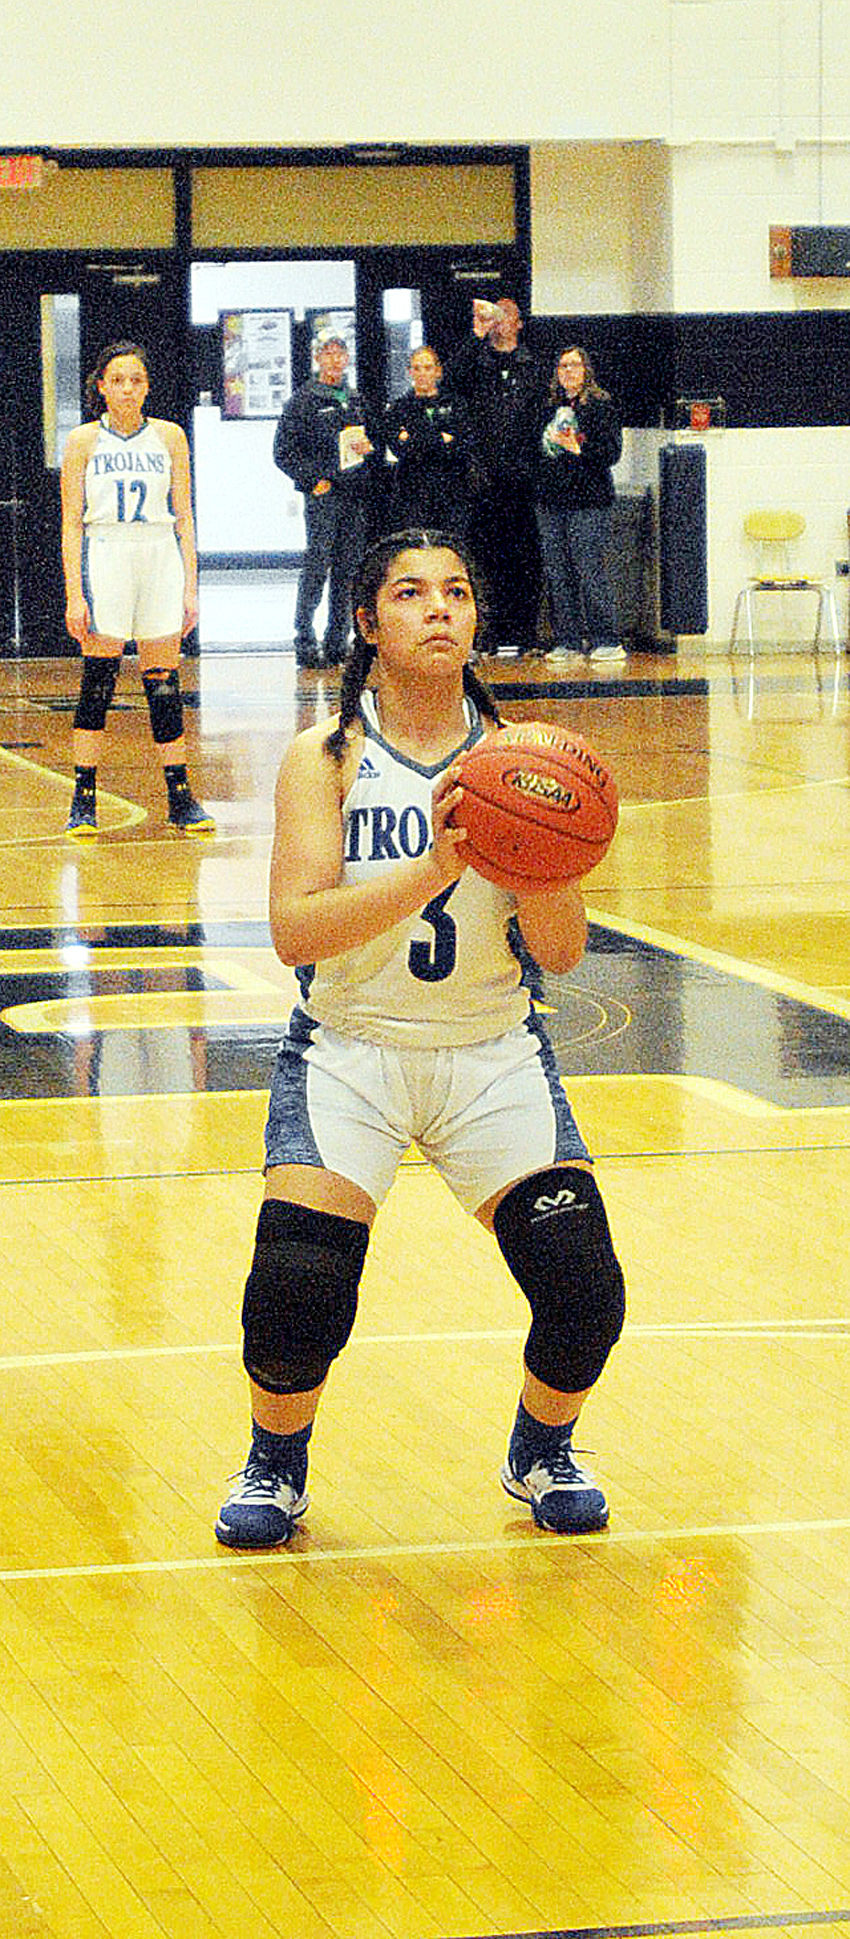 HALL OF FAME CLASSIC: It wasn't pretty, but Lady Trojans get to 3-0